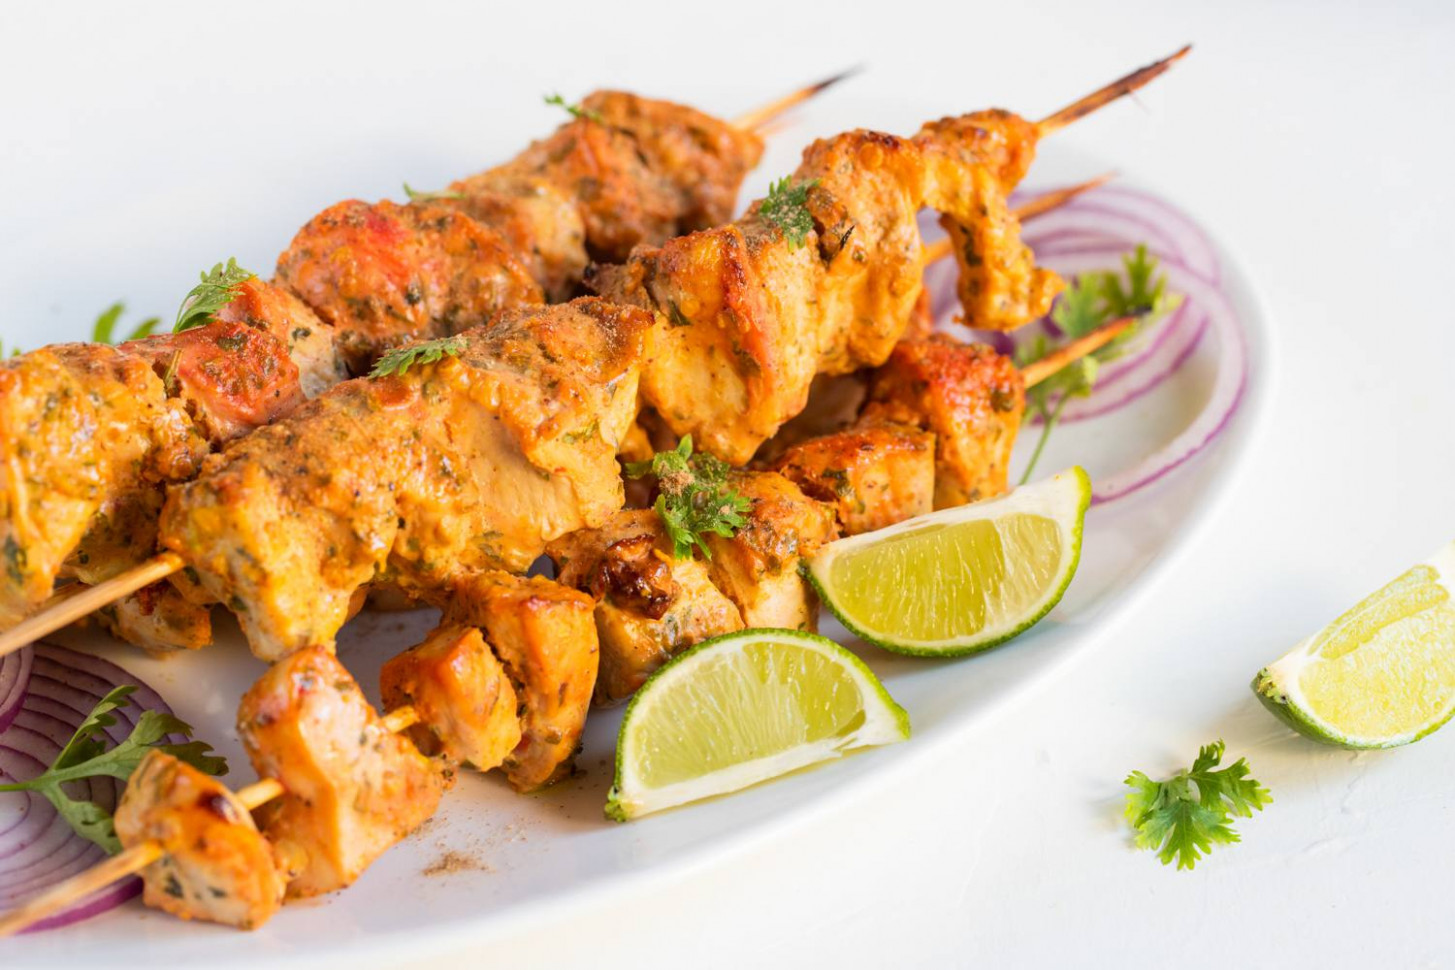 Recipes of Indian Finger Foods for Parties - quick and easy party finger food recipes